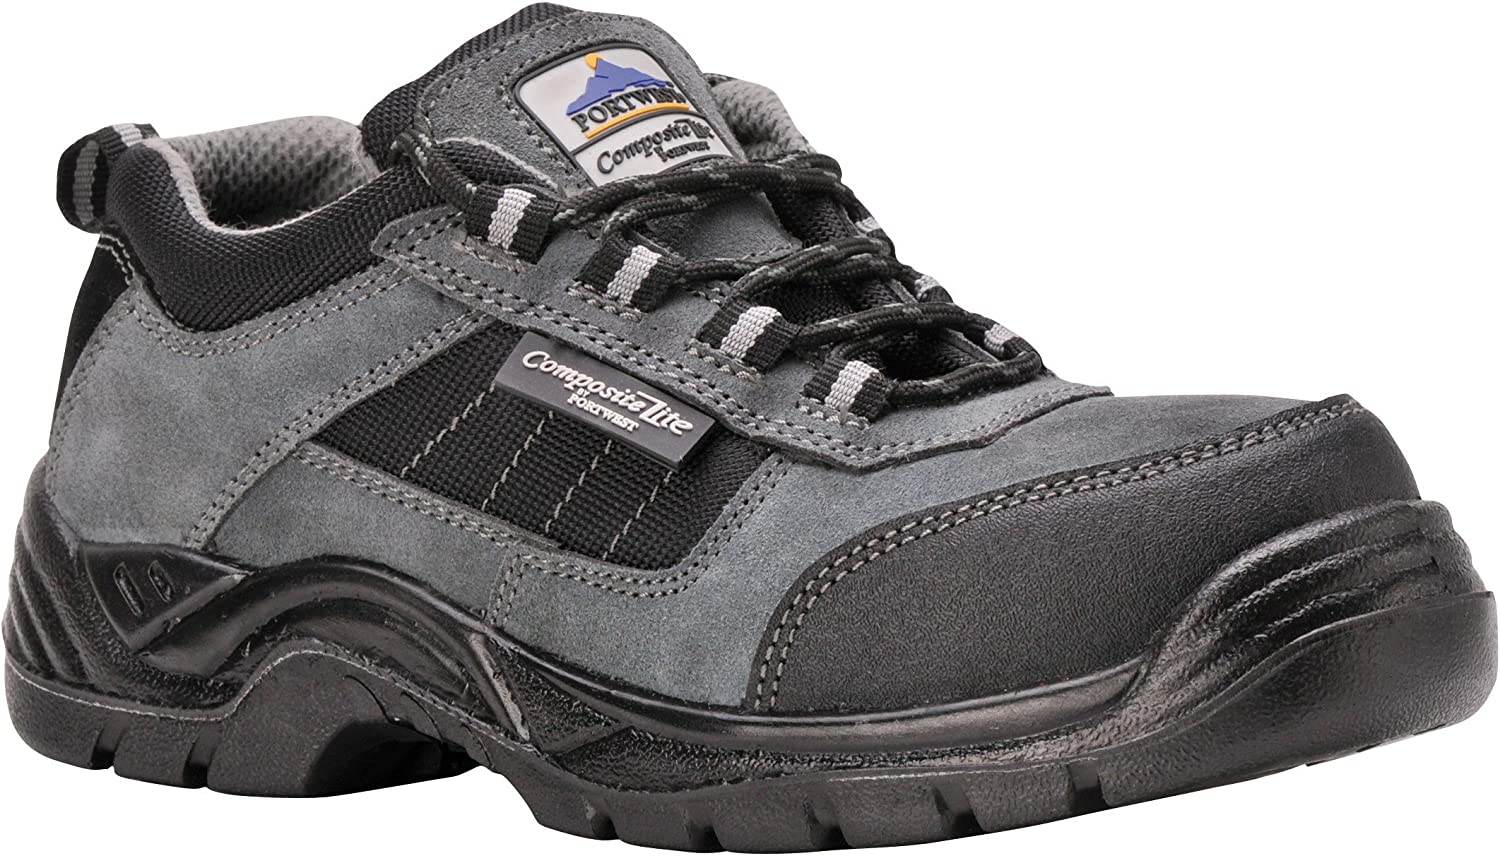 Portwest Composite - Bota Trekker, S1: Amazon.es: Industria ...